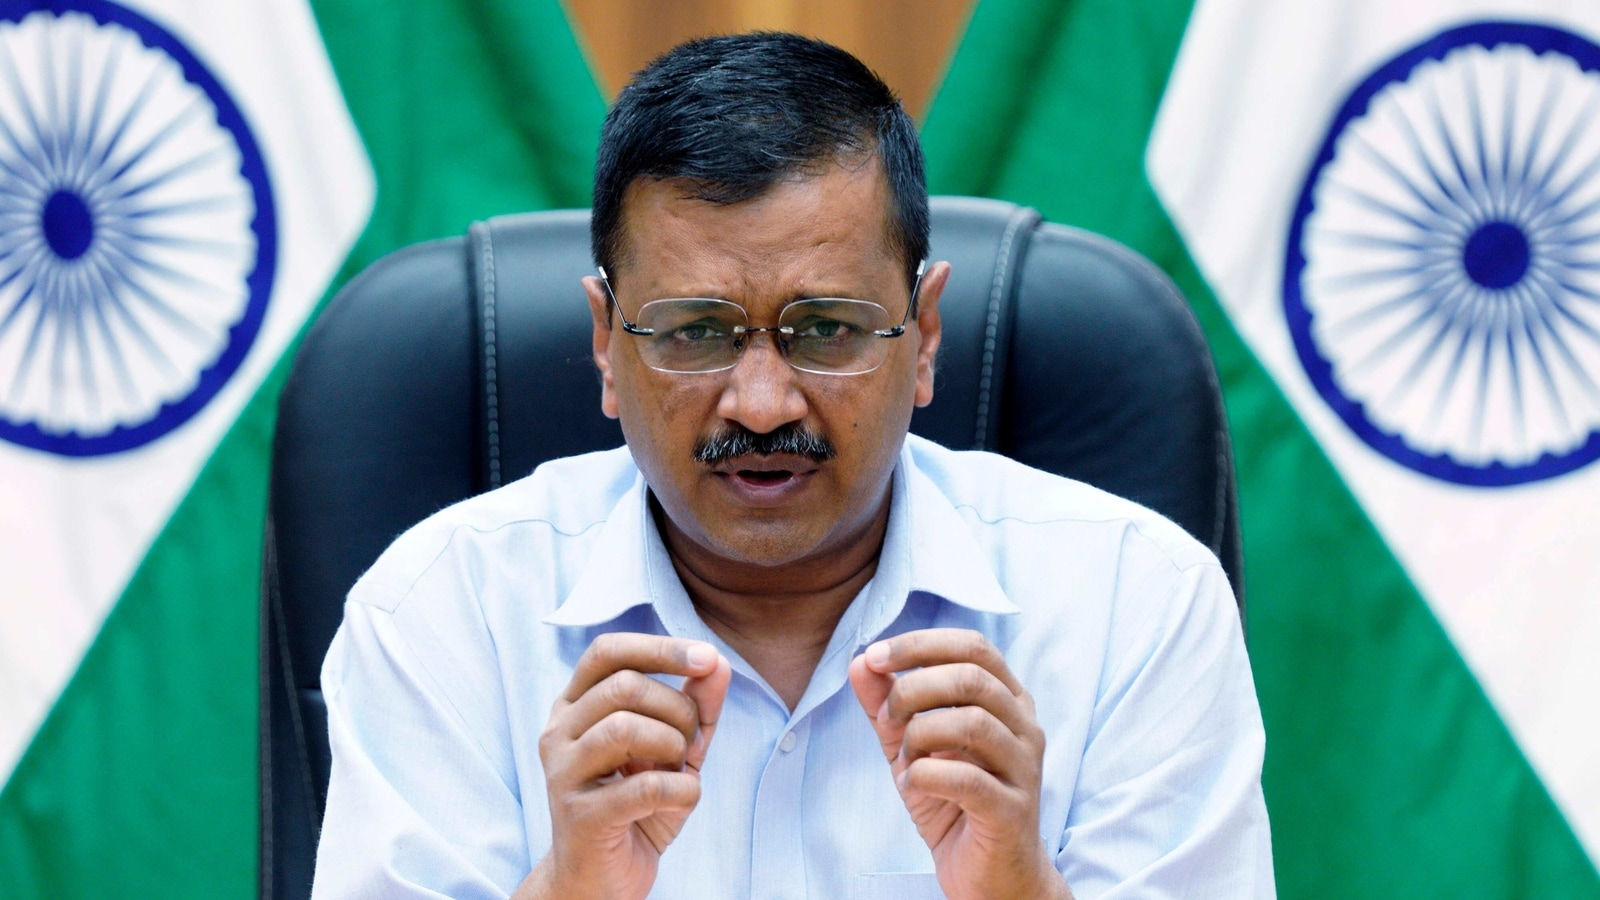 Delhi to increase normal, ICU beds reserved for Covid-19 patients: CM Kejriwal - Hindustan Times